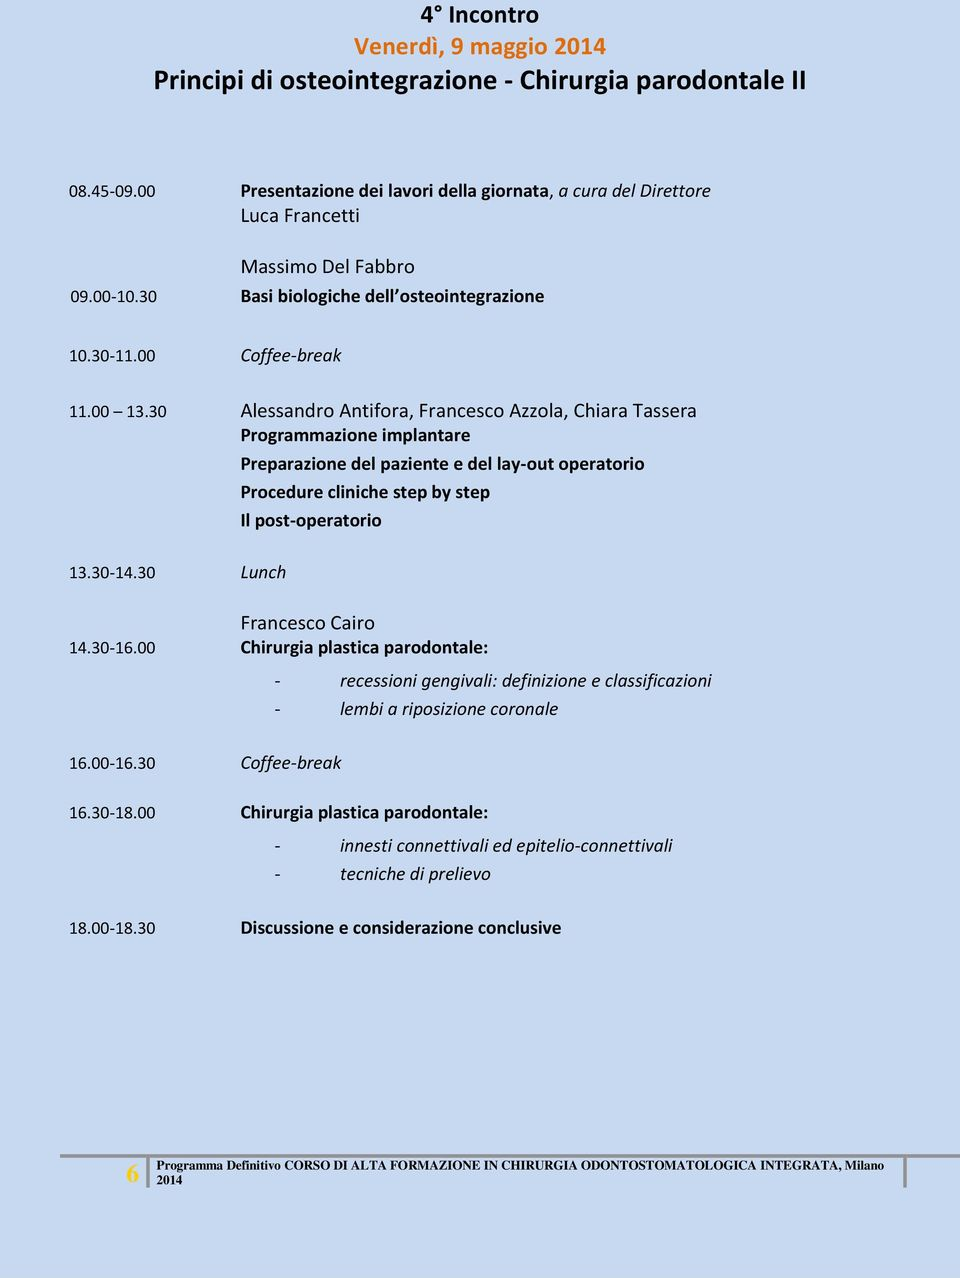 30 Alessandro Antifora, Francesco Azzola, Chiara Tassera Programmazione implantare Preparazione del paziente e del lay-out operatorio Procedure cliniche step by step Il post-operatorio 13.30-14.